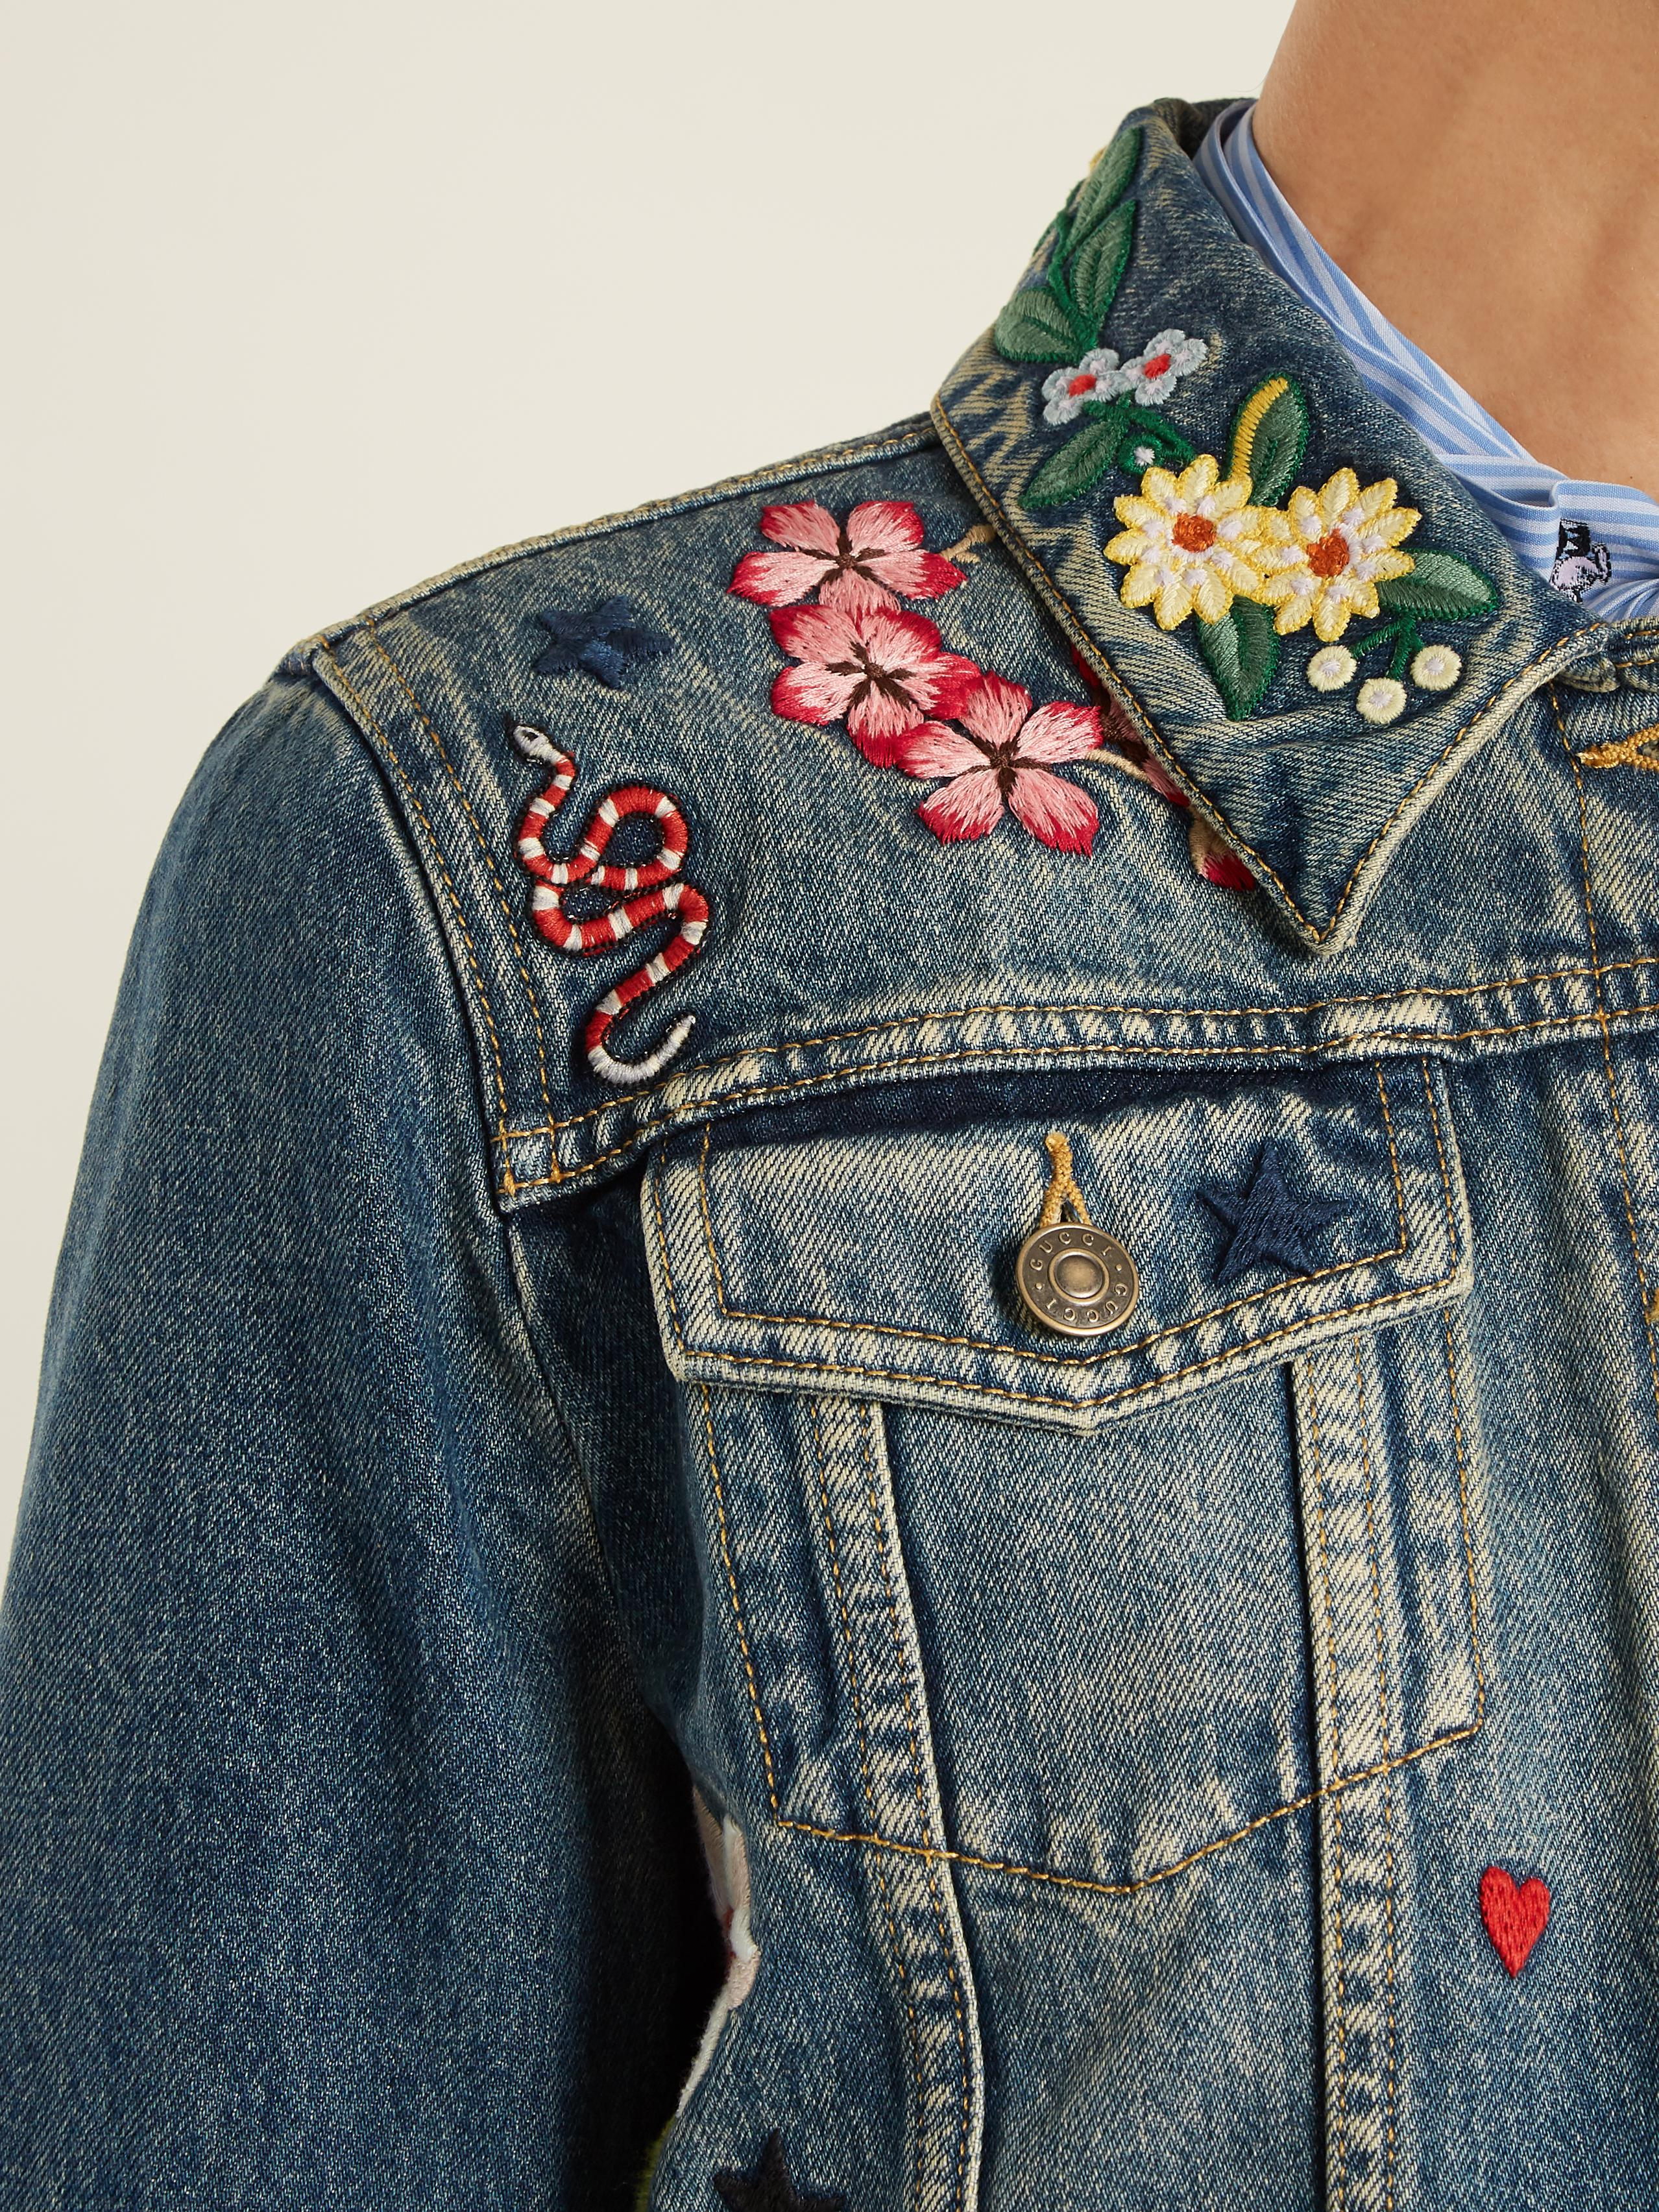 2a7faa9fb4a5f Lyst - Gucci Floral-embroidered Denim Jacket in Blue